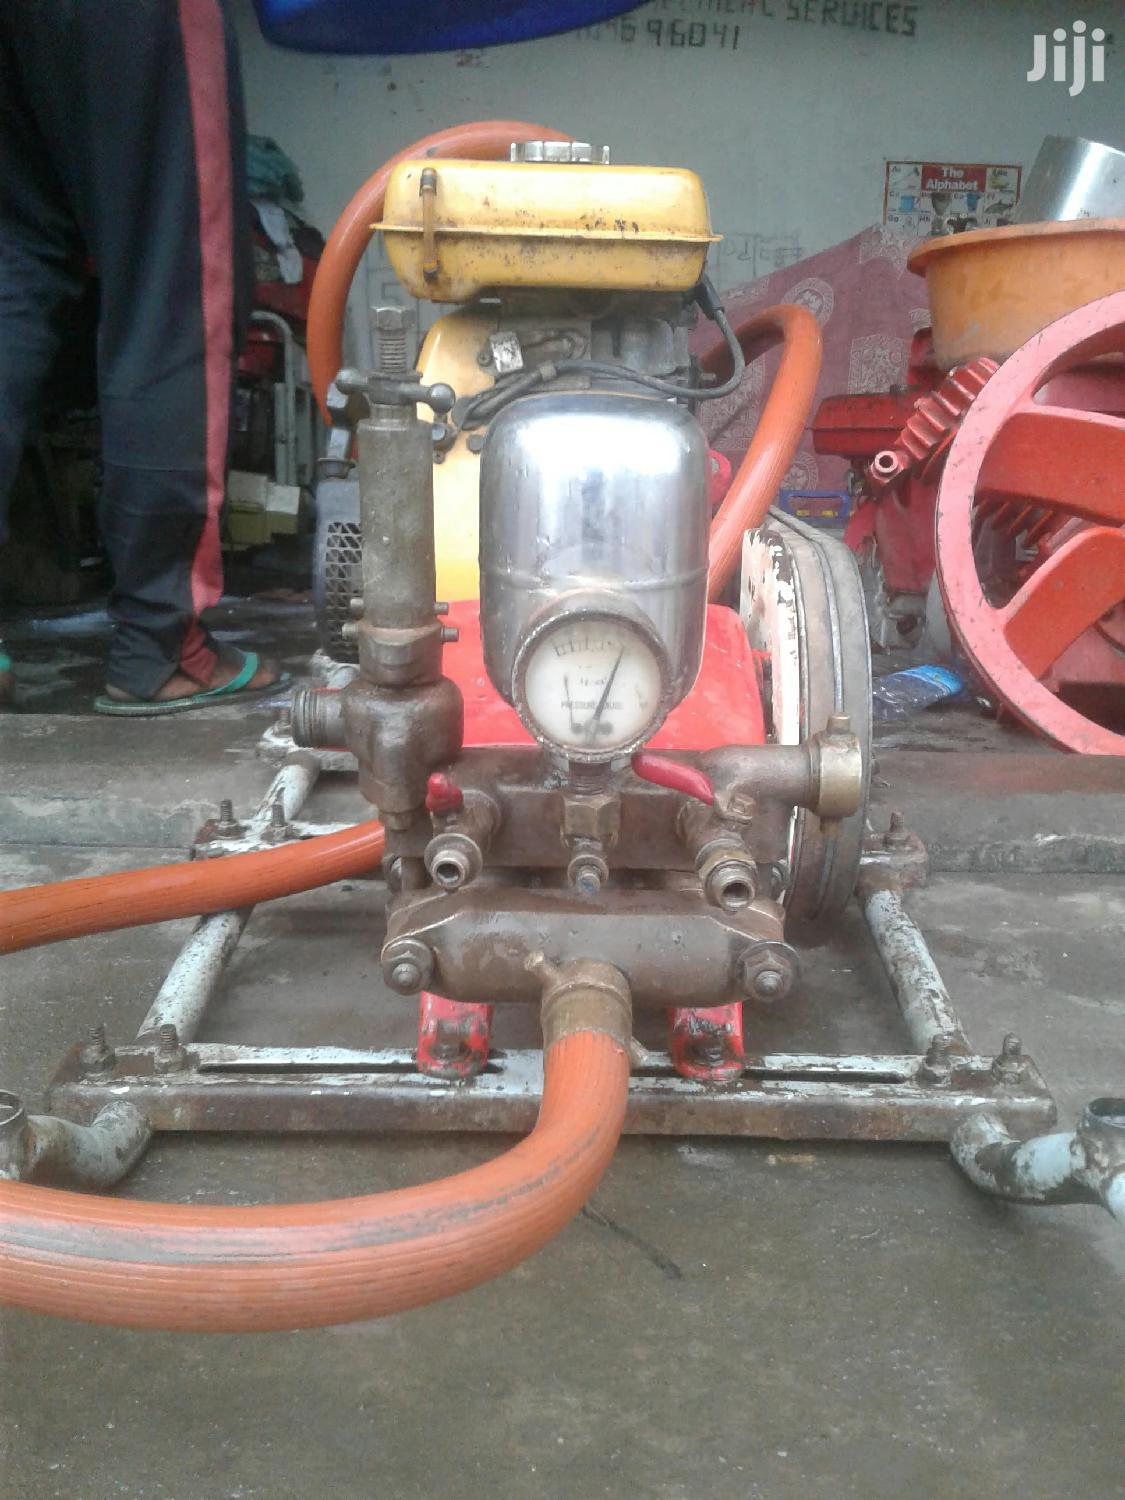 Car Wash Machine For Hire Diesel/Petrol And Water Pumps | Vehicle Parts & Accessories for sale in Kampala, Central Region, Uganda